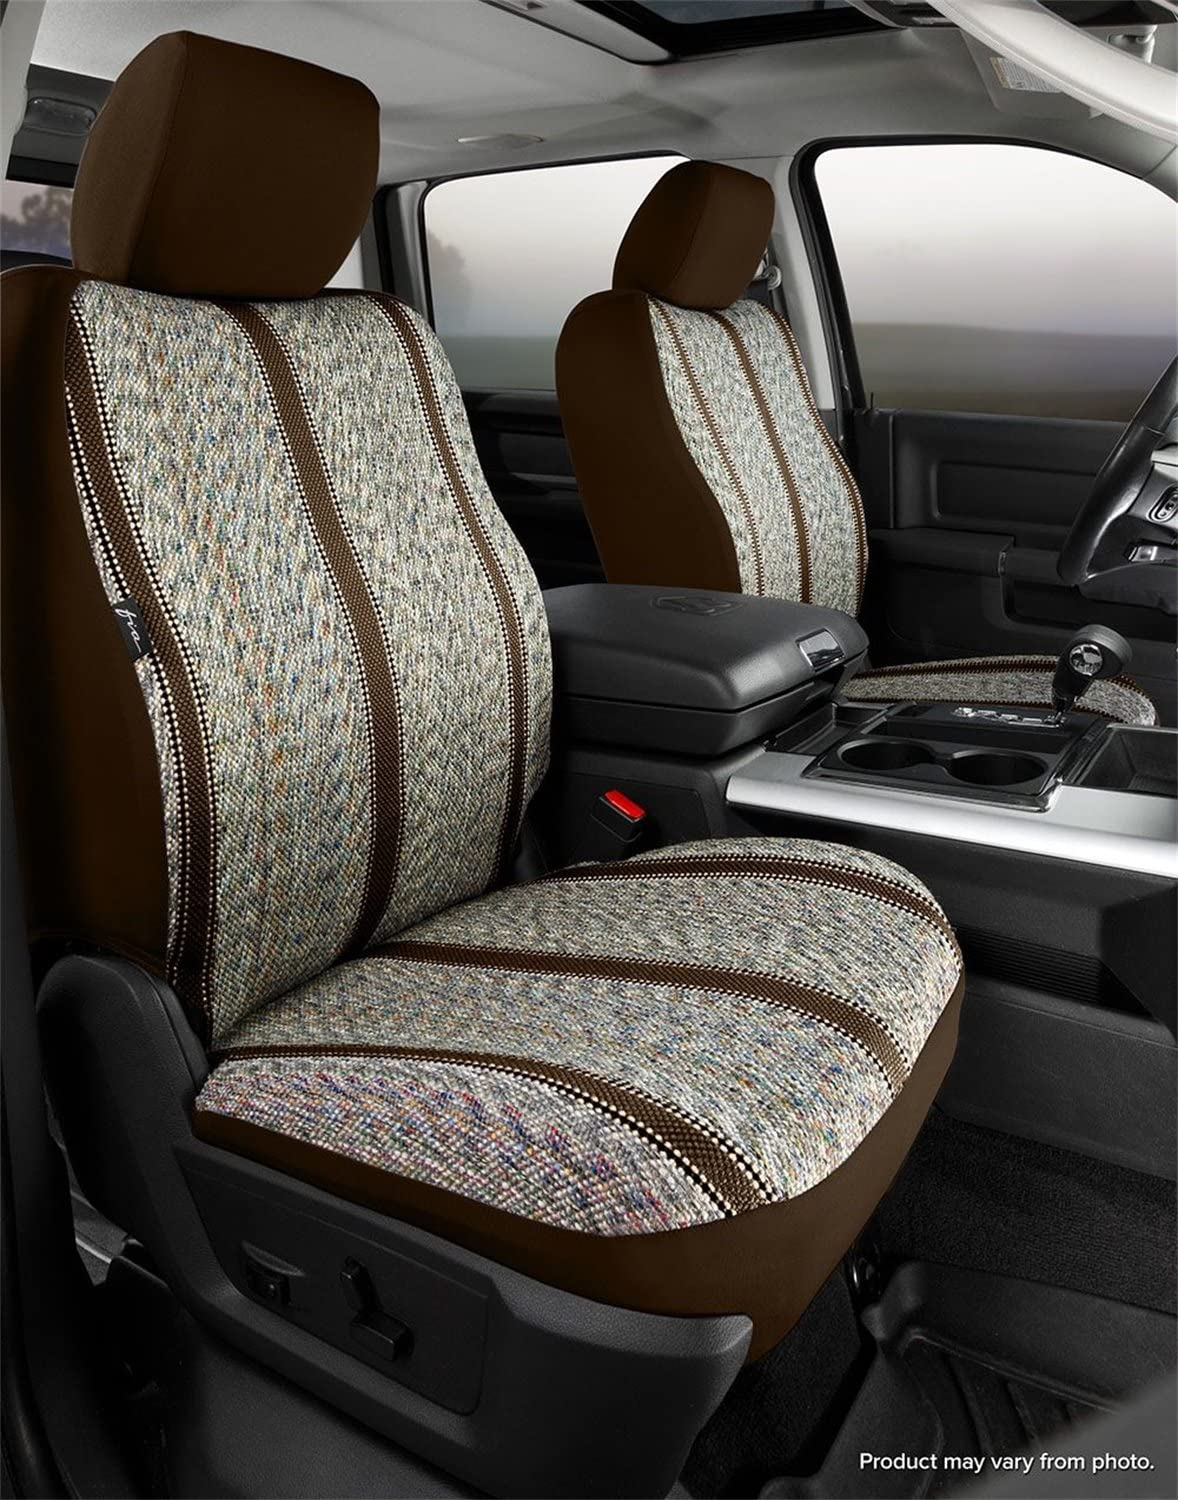 Fia OE38-32 TAUPE Custom Fit Front Seat Cover Bucket Seats Tweed, Taupe